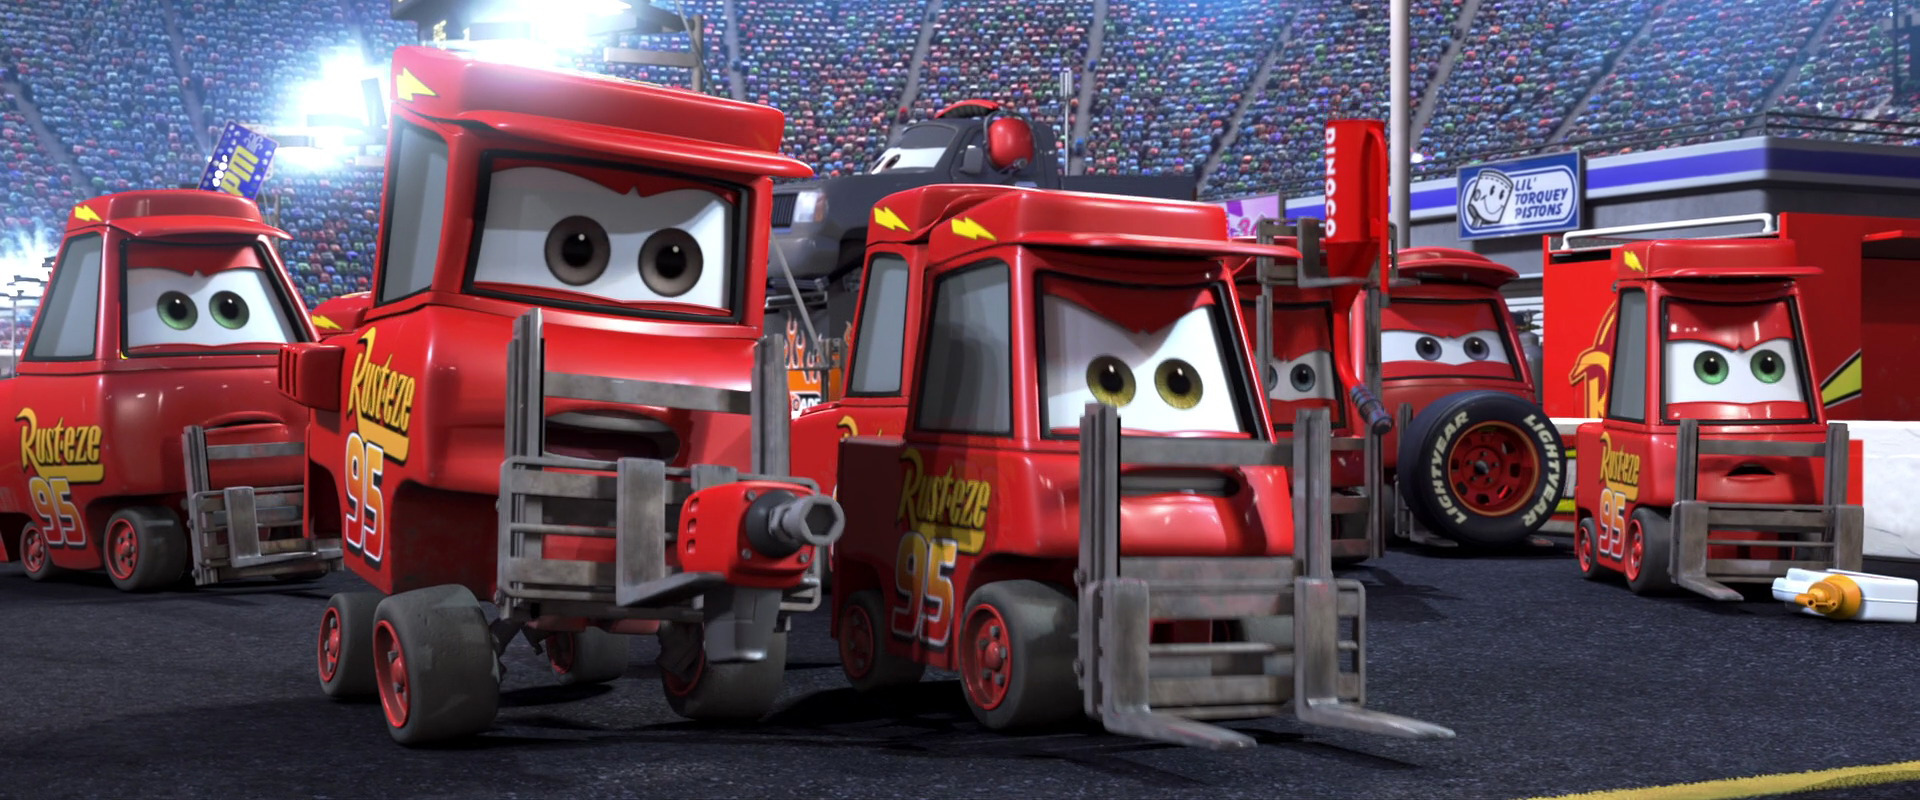 Cars-disneyscreencaps.com-739.jpg